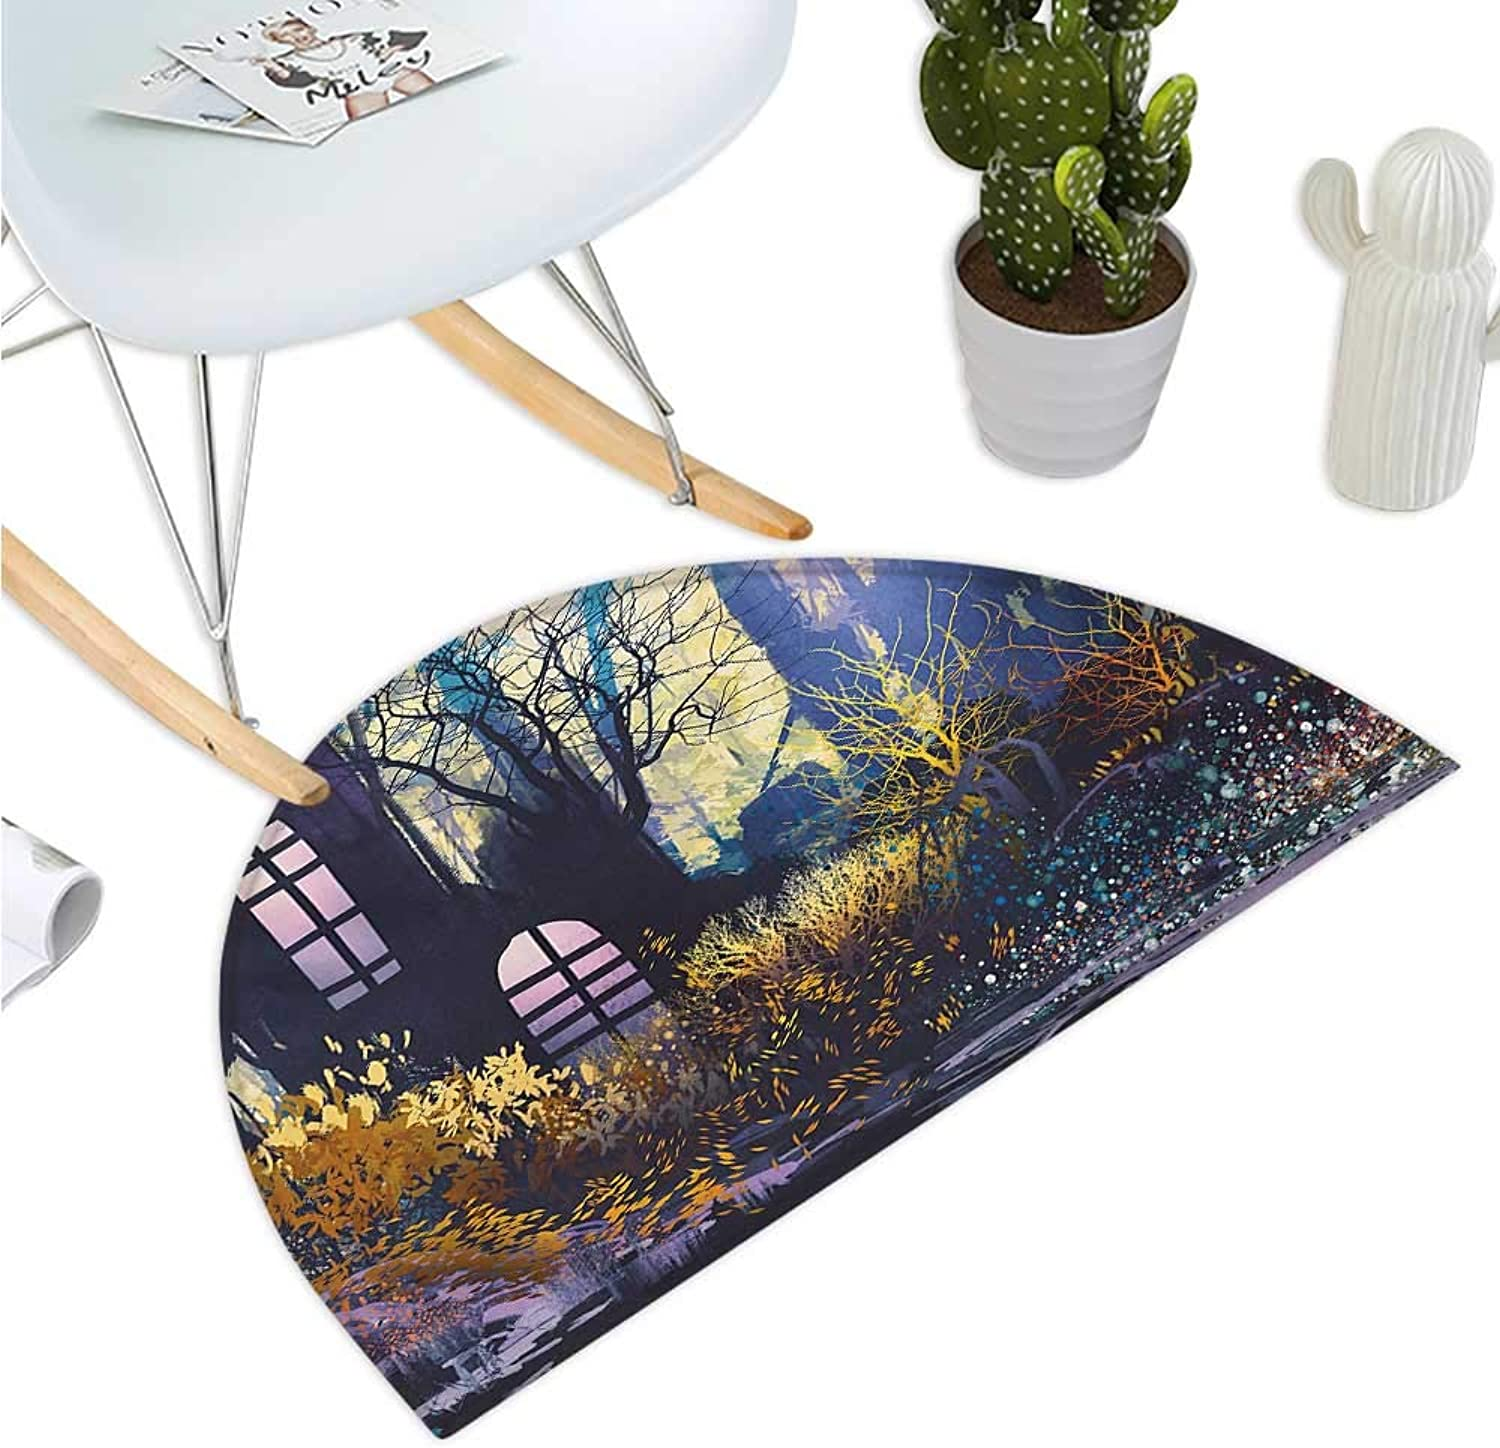 Fantasy Semicircle Doormat Mystical House in Tree Trunk with Windows Ancient Lost City Animation Nature Print Halfmoon doormats H 43.3  xD 64.9  Multicolor